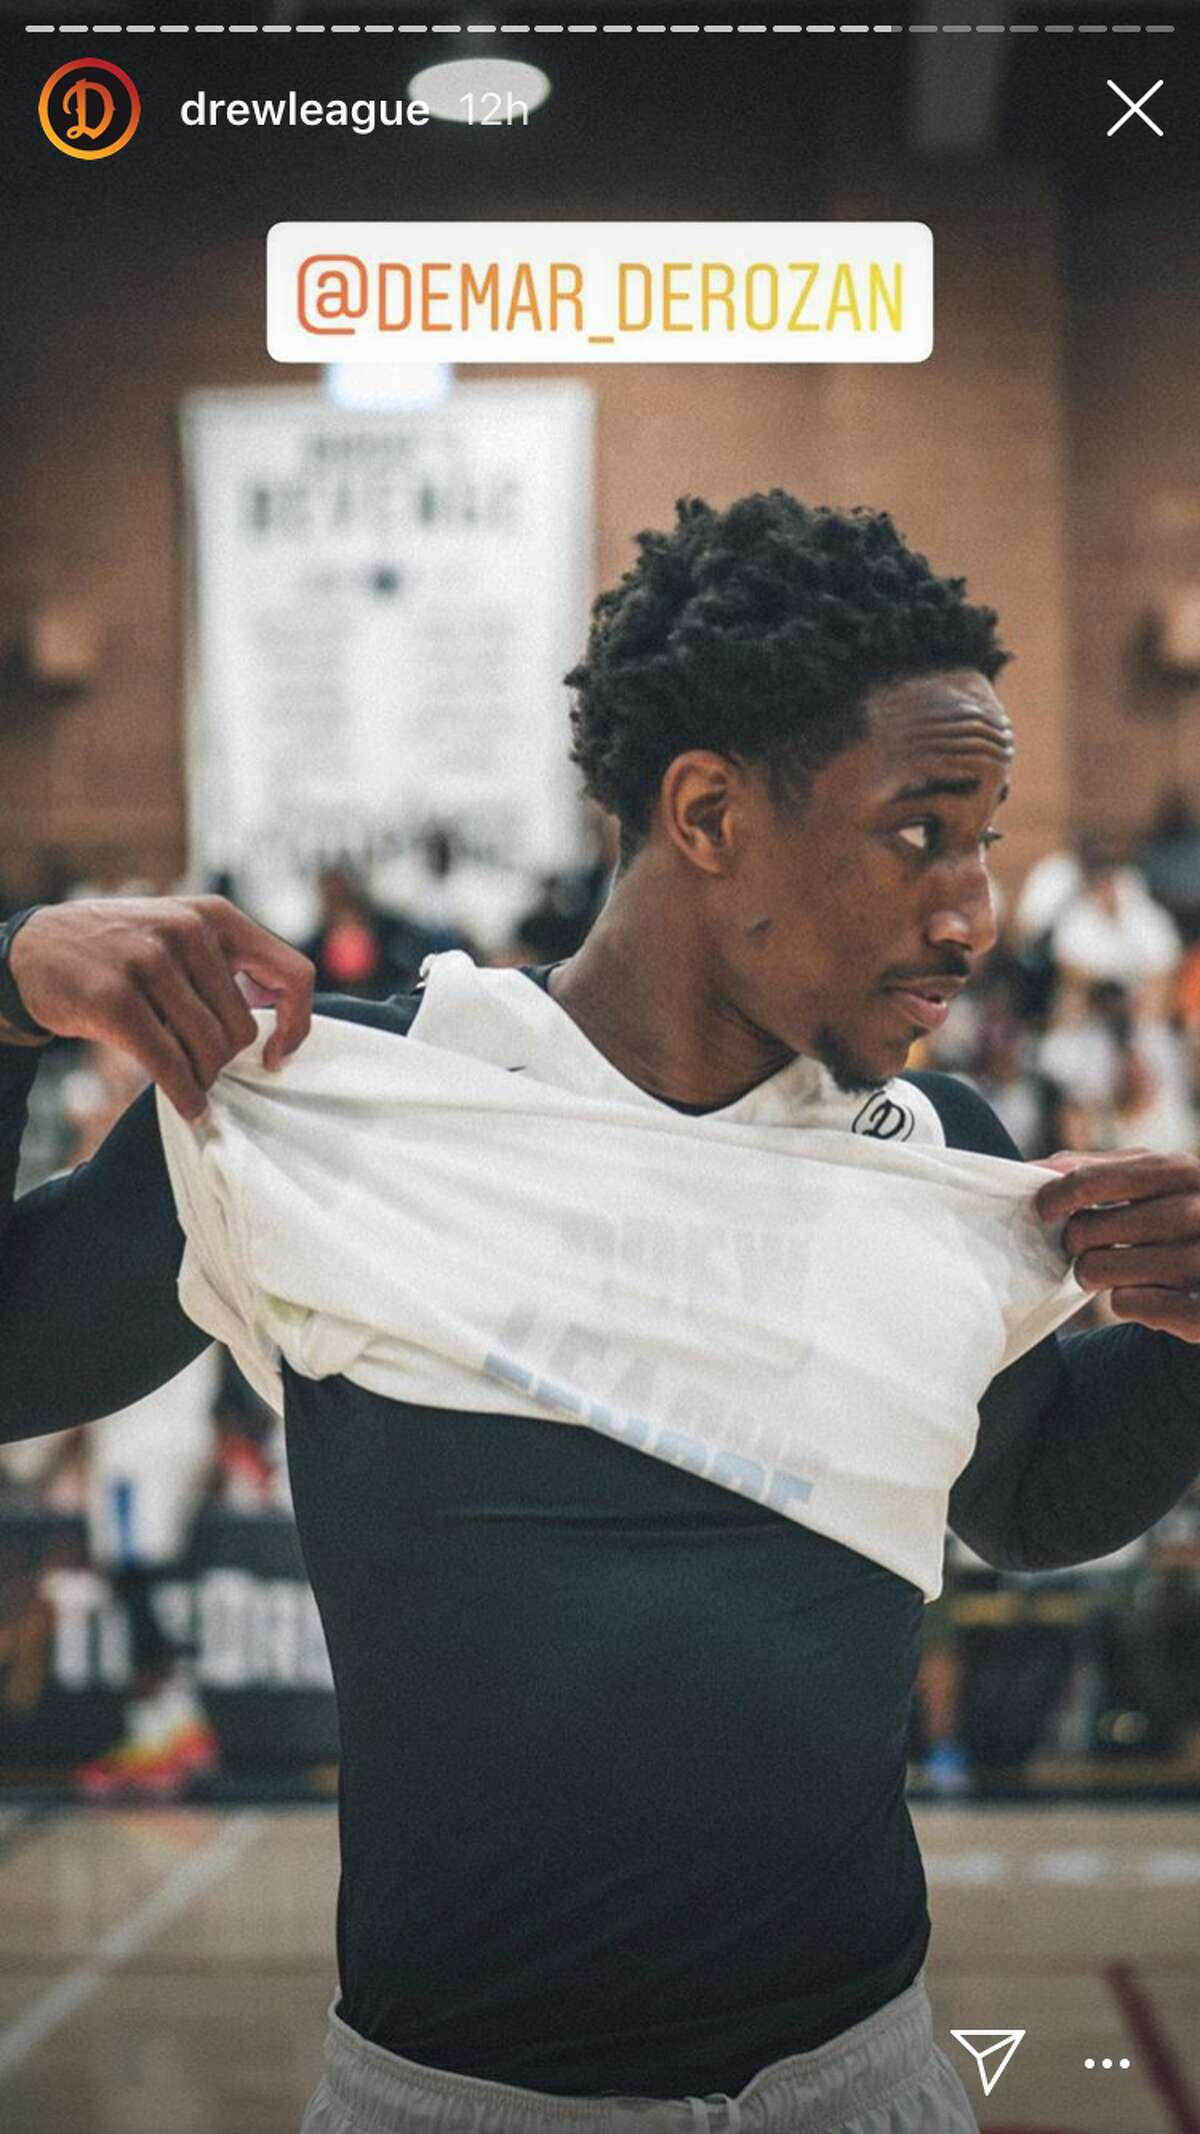 Photos posted the Drew League's official Instagram page show DeMar DeRozan participating in the tournament, spending time with Rudy Gay.